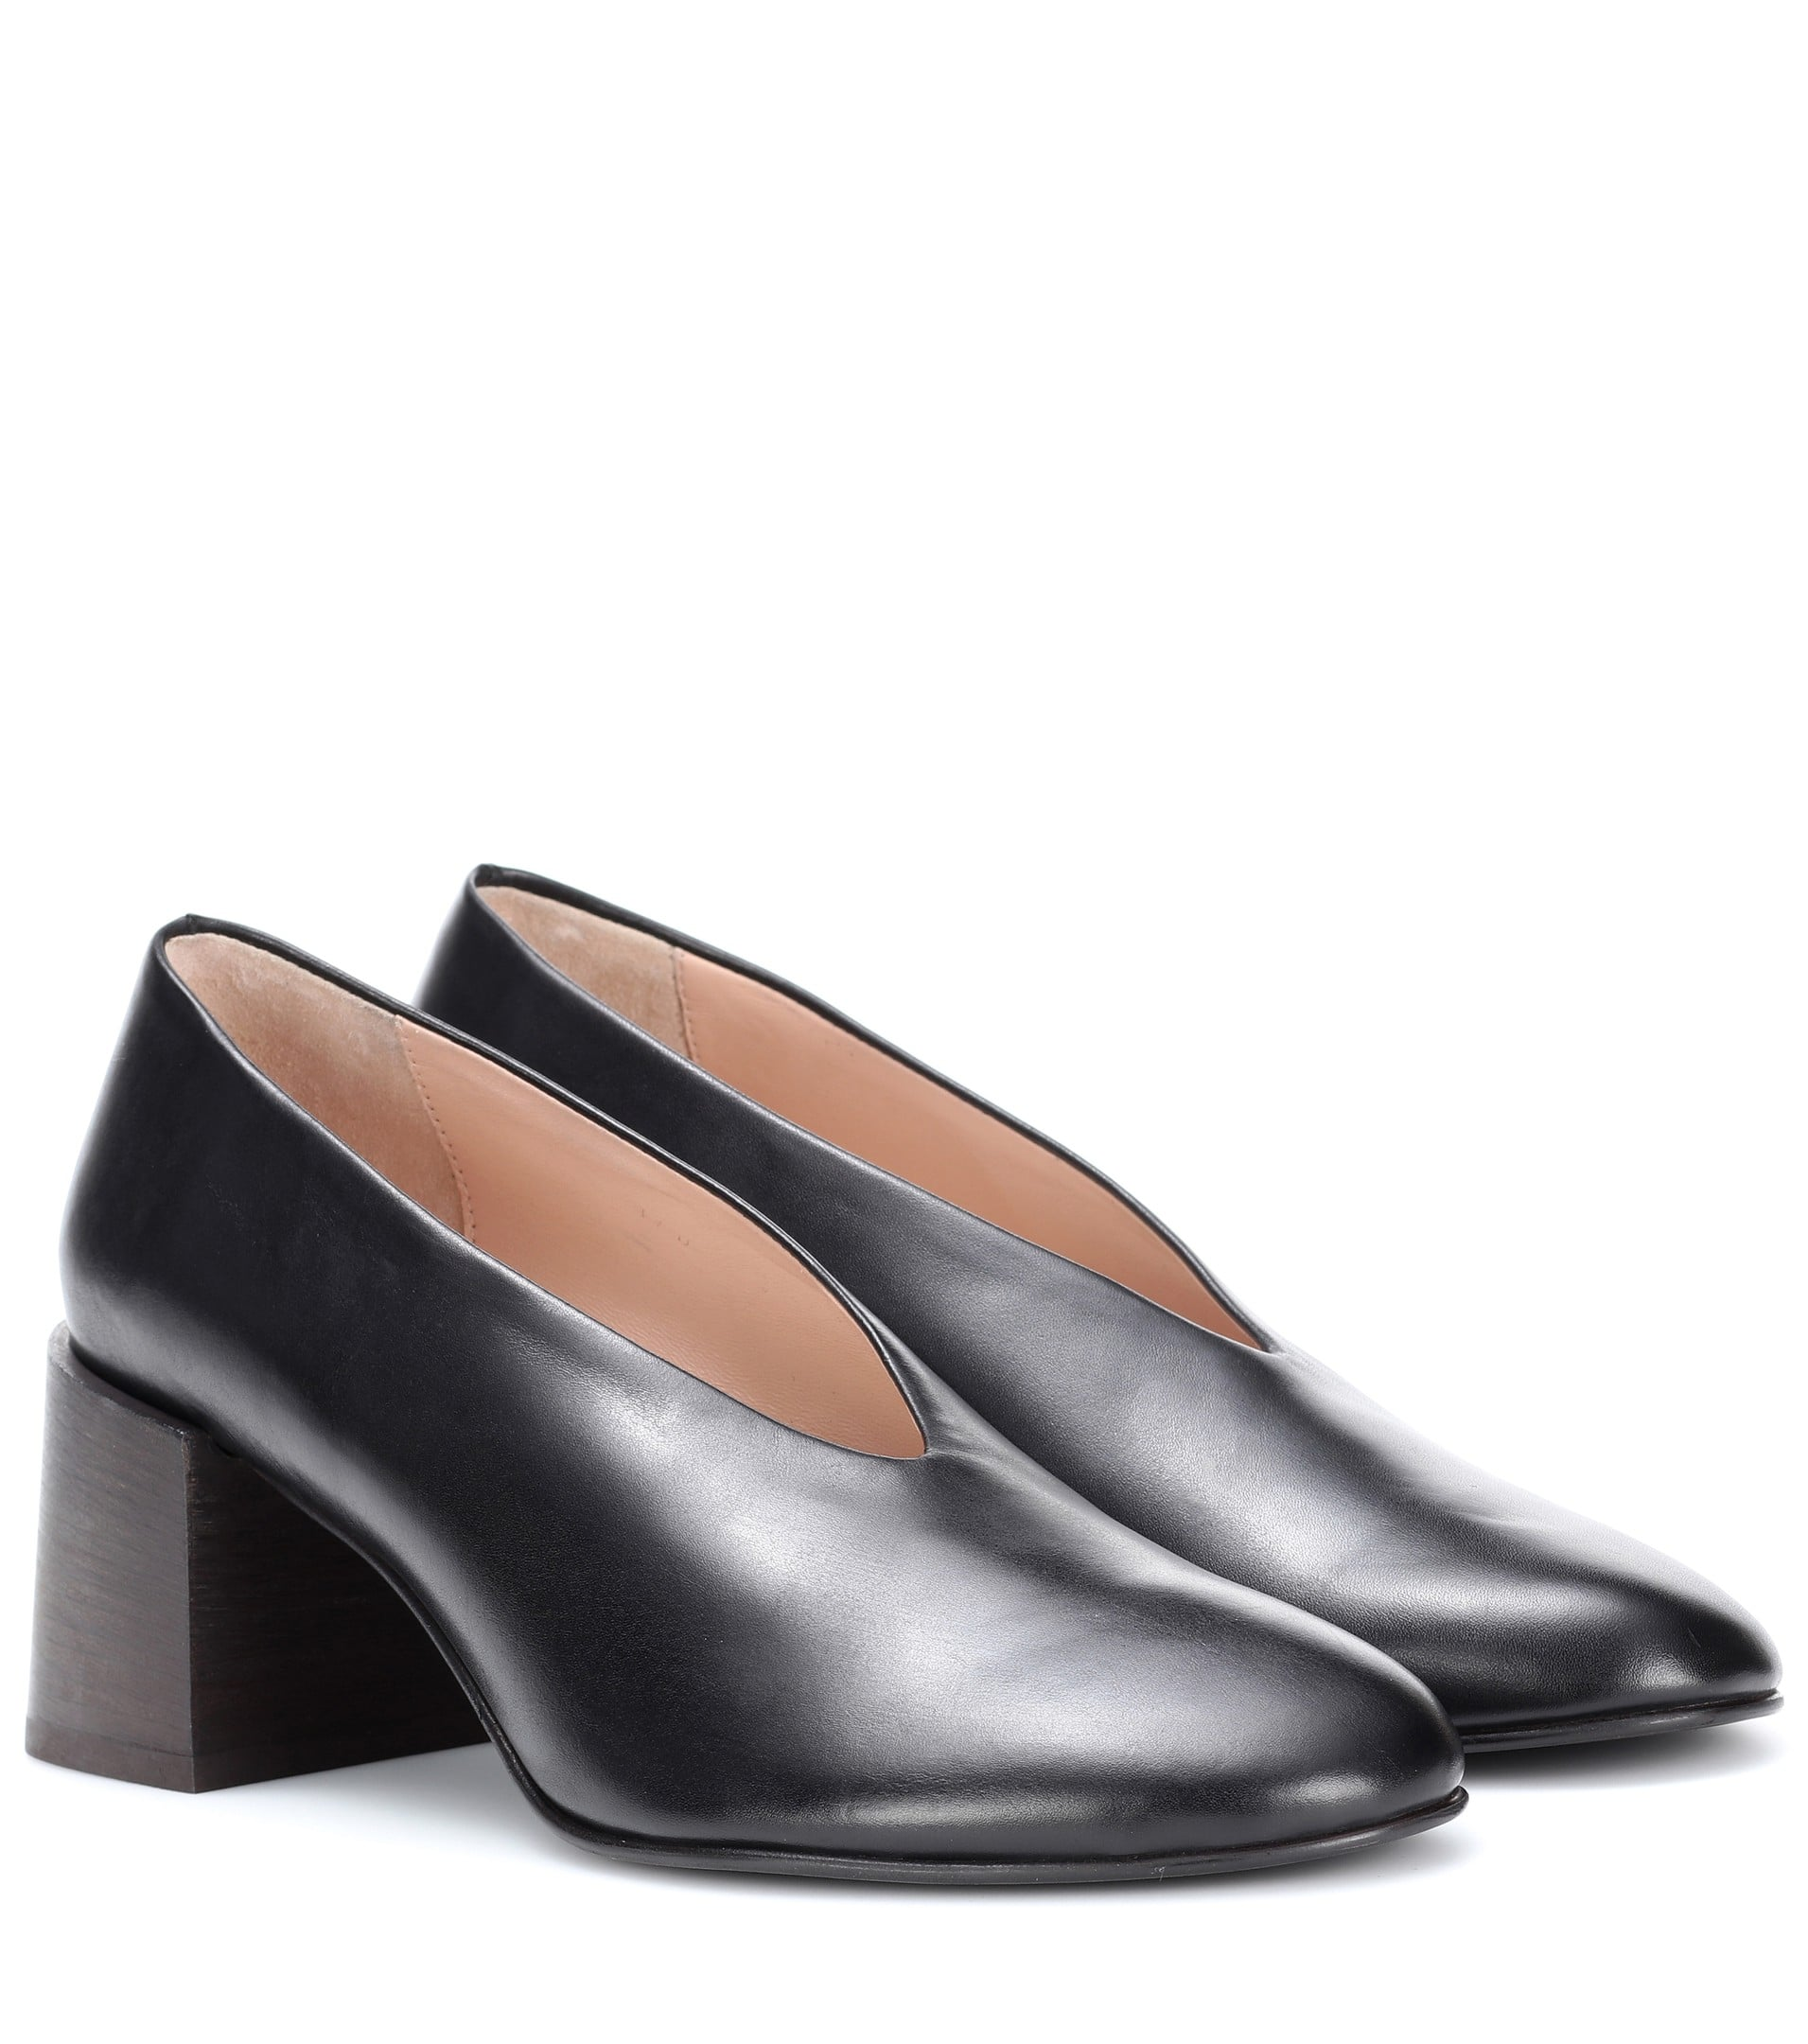 Acne Studios Sully Leather Pumps